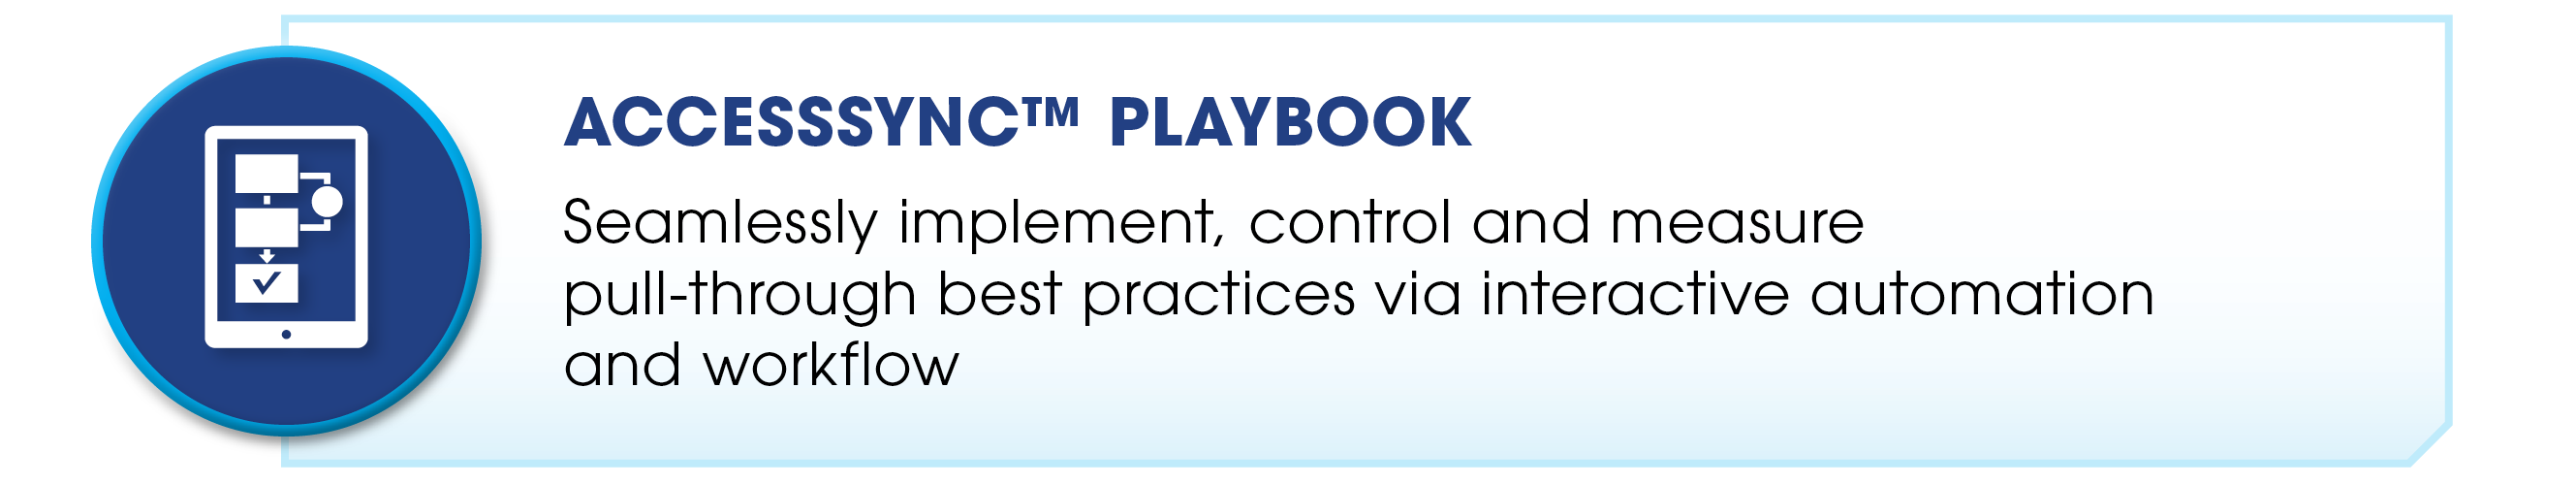 AccessSync Playbook